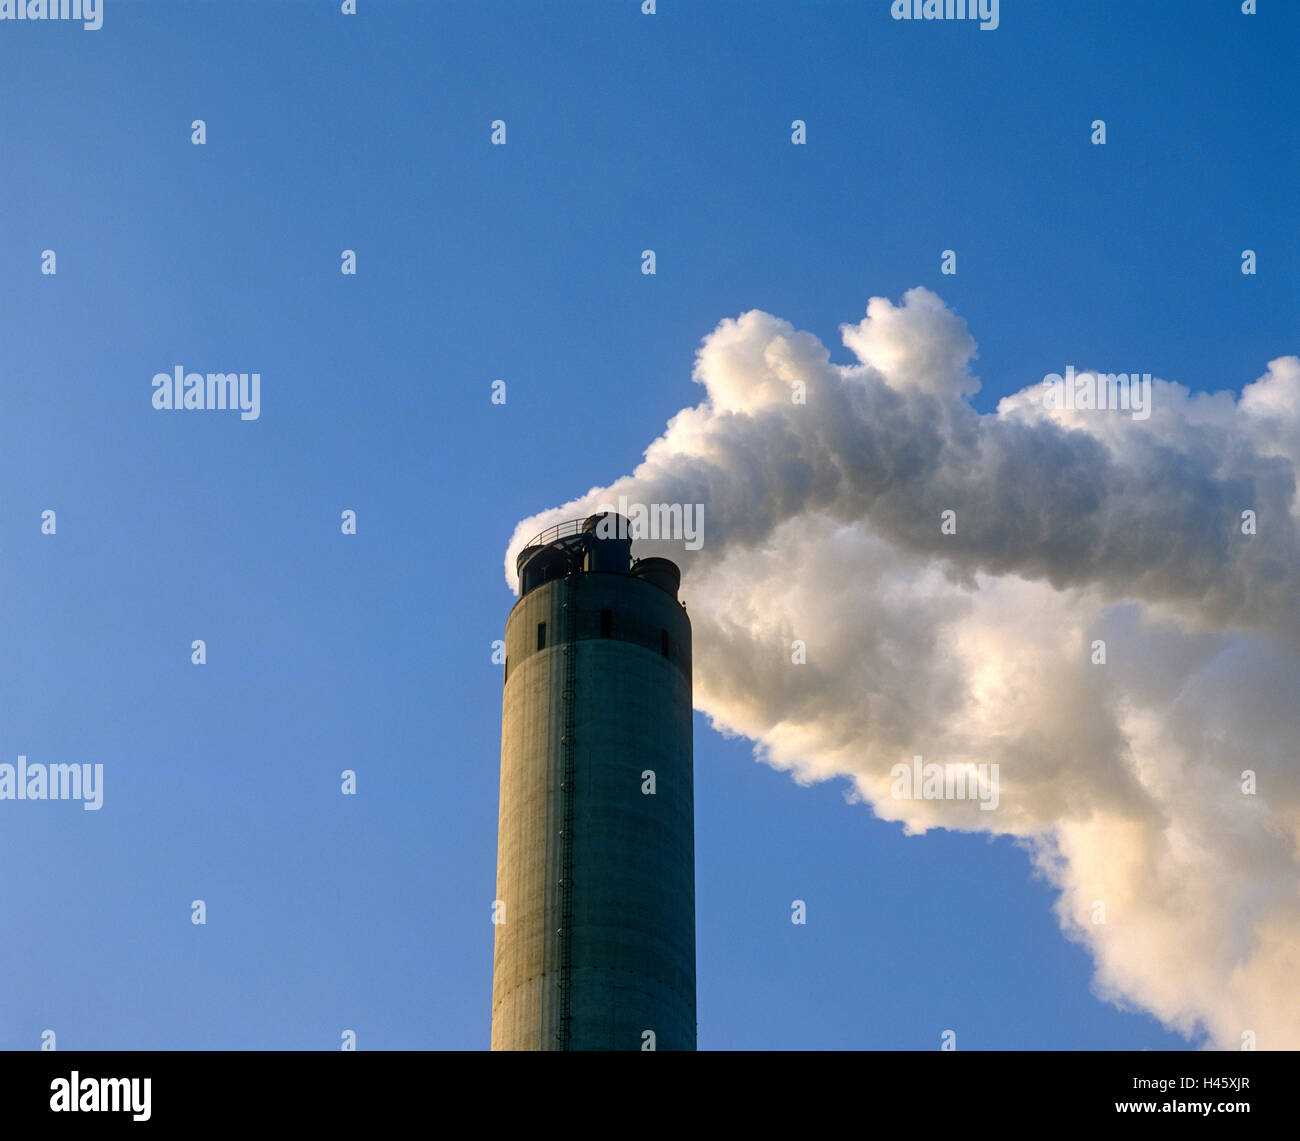 Smoke coming from an industrial tower - Stock Image